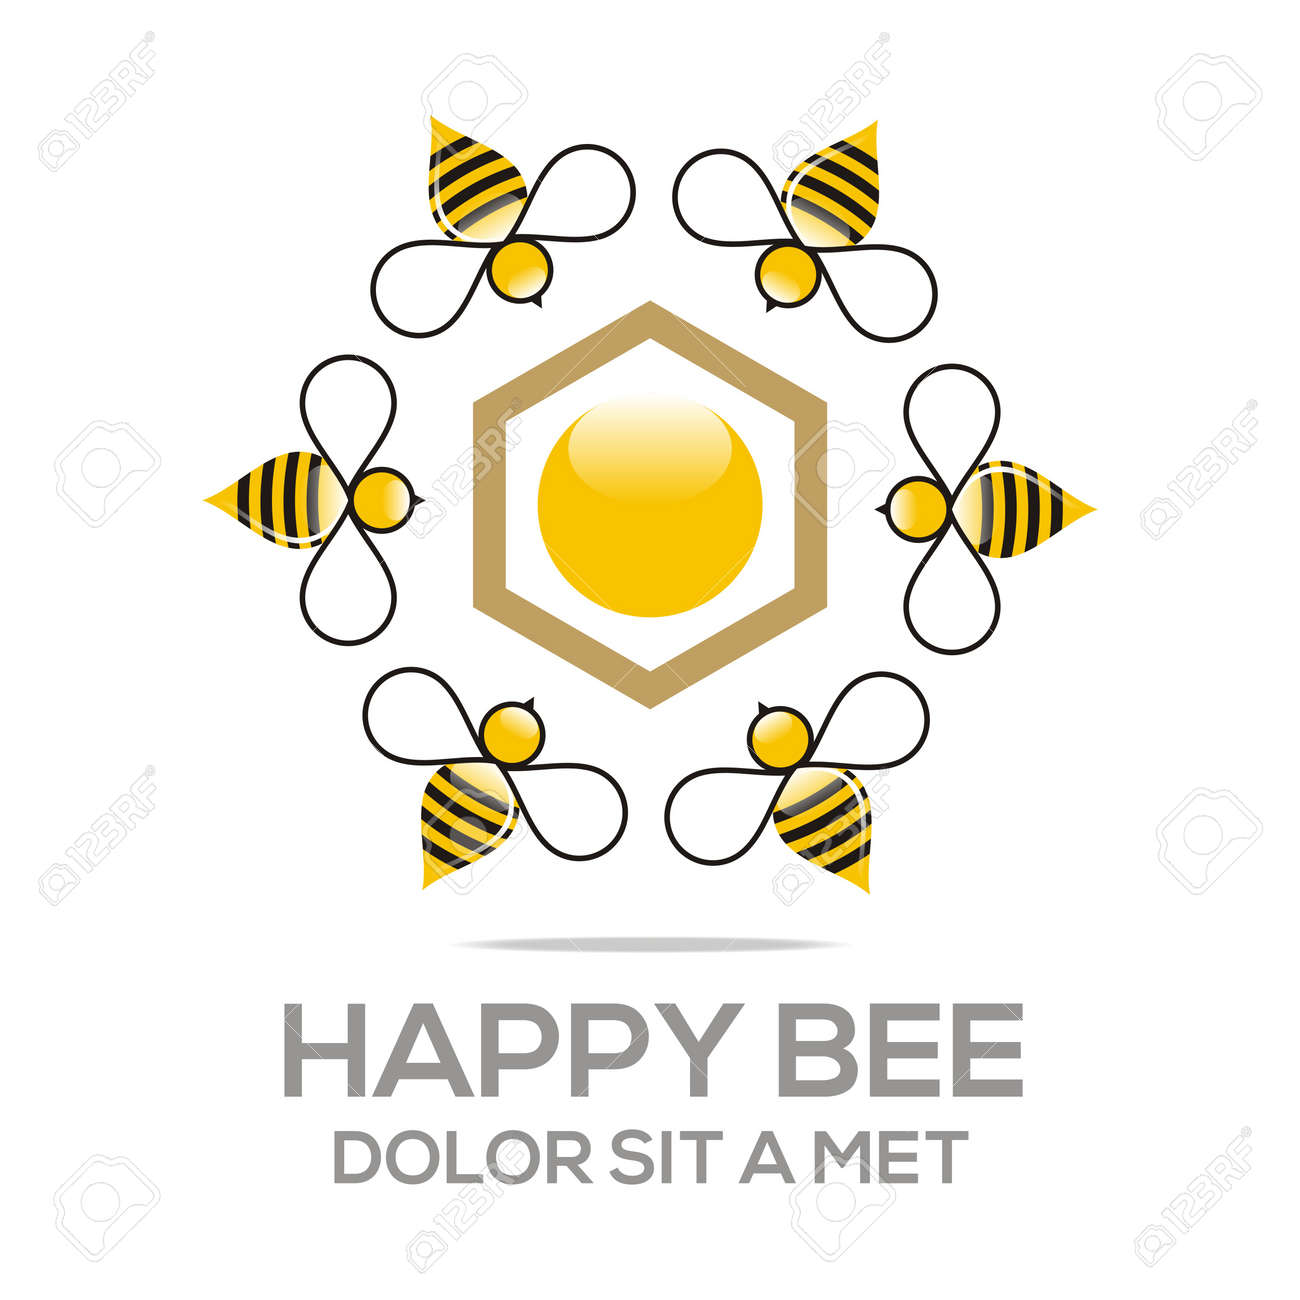 Logo Beehive Sweet Natural And Honeycomb Design Stock Vector - 45117741